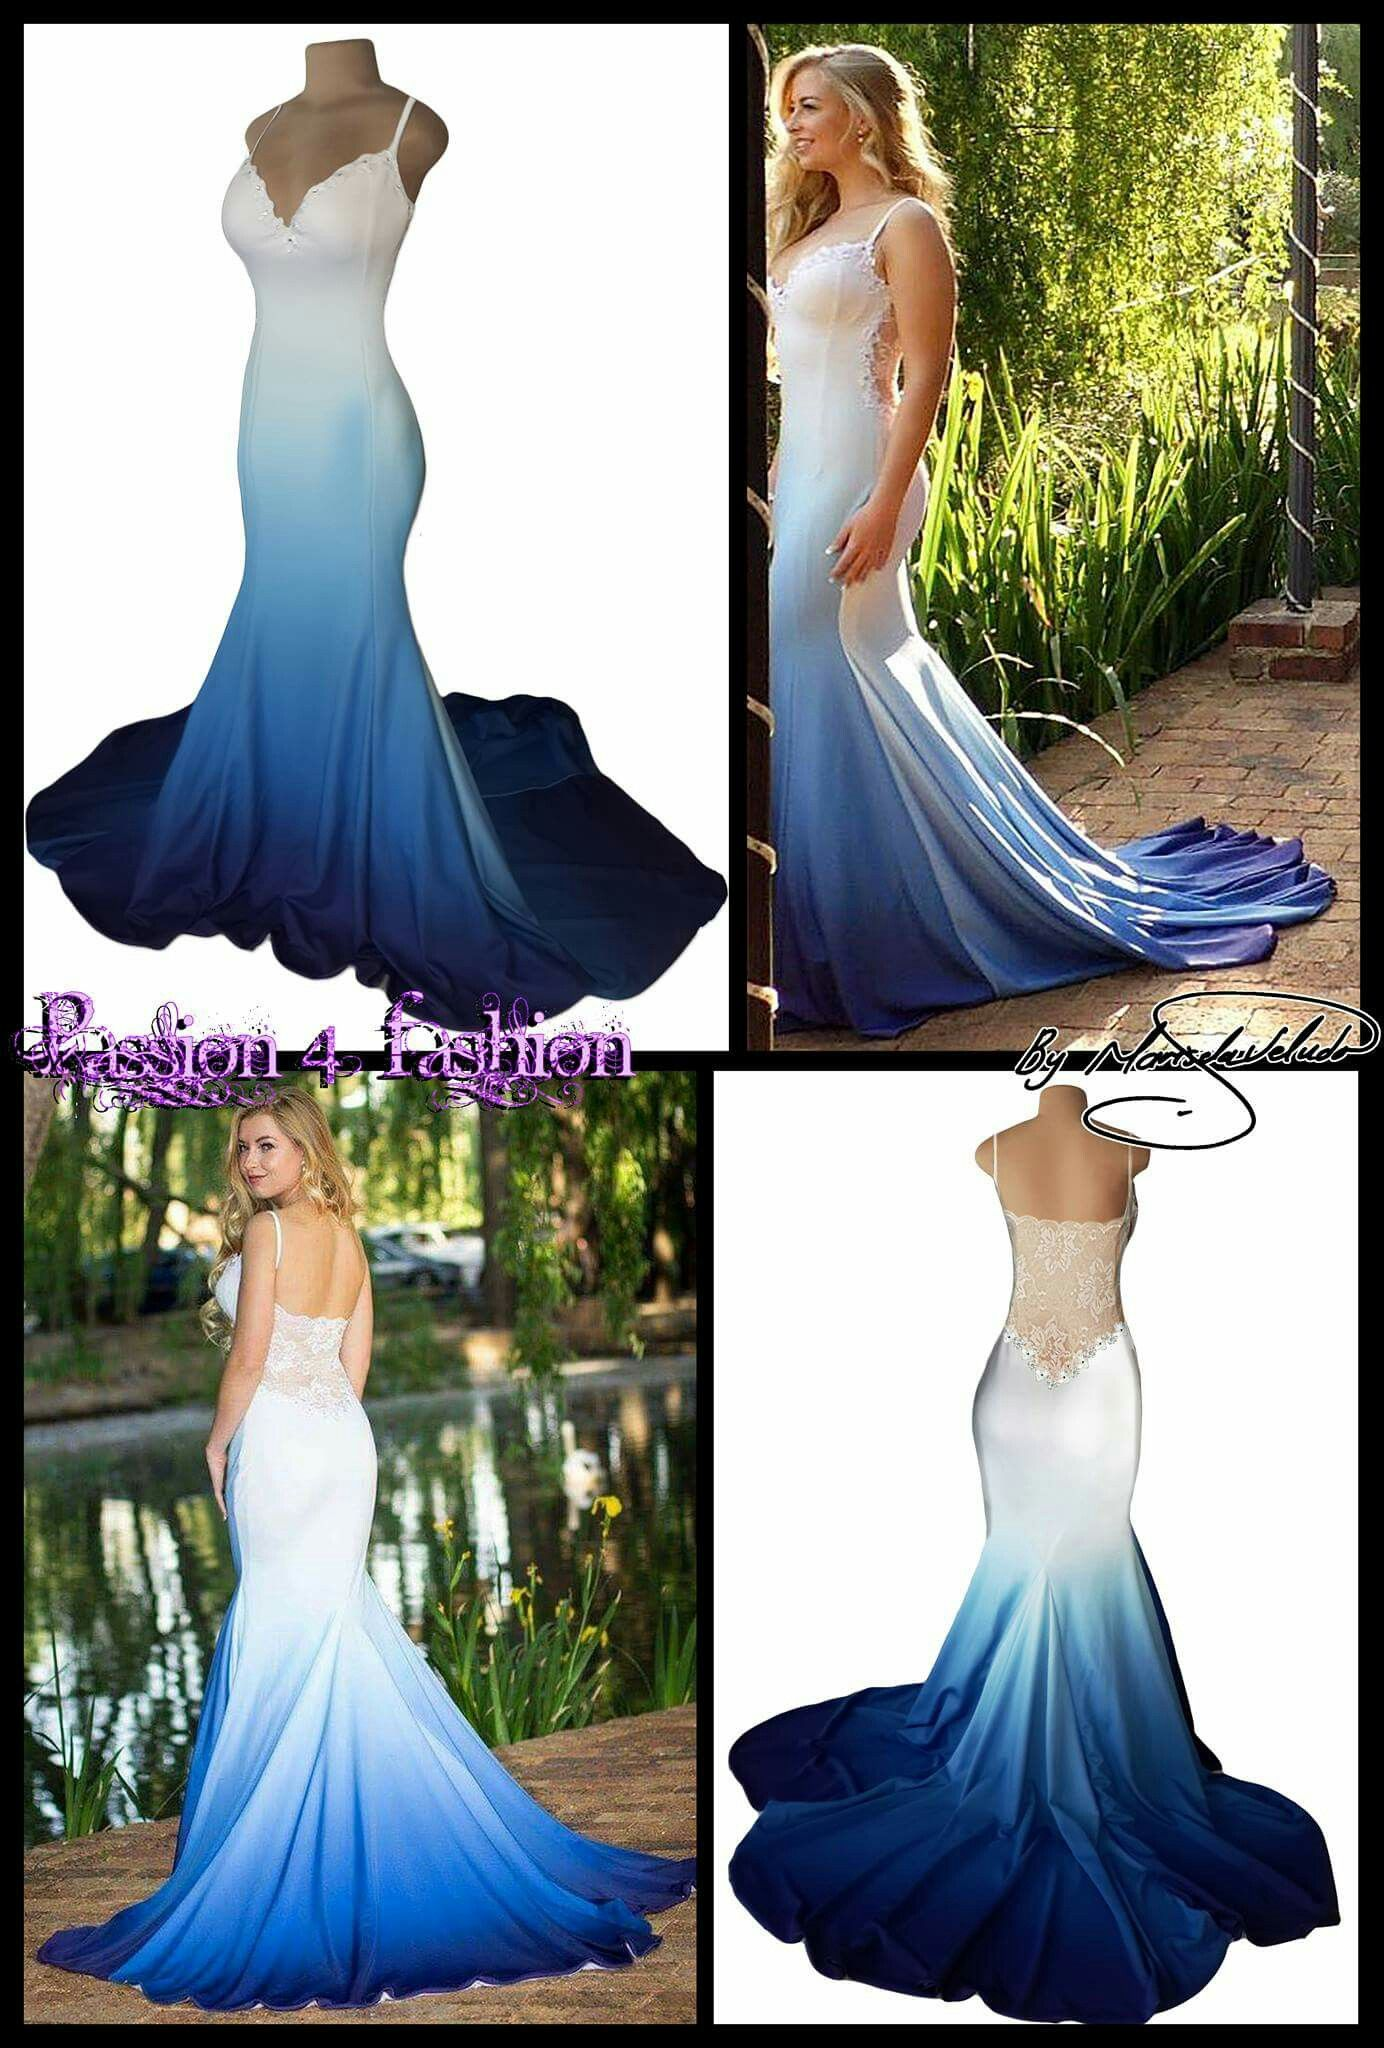 636cb7e865 White   blue ombre. Soft mermaid matric dance dress with a sheer lace back.  Custom printed fabrics . A sweetheart neckline. With a touch of silver  beads and ...